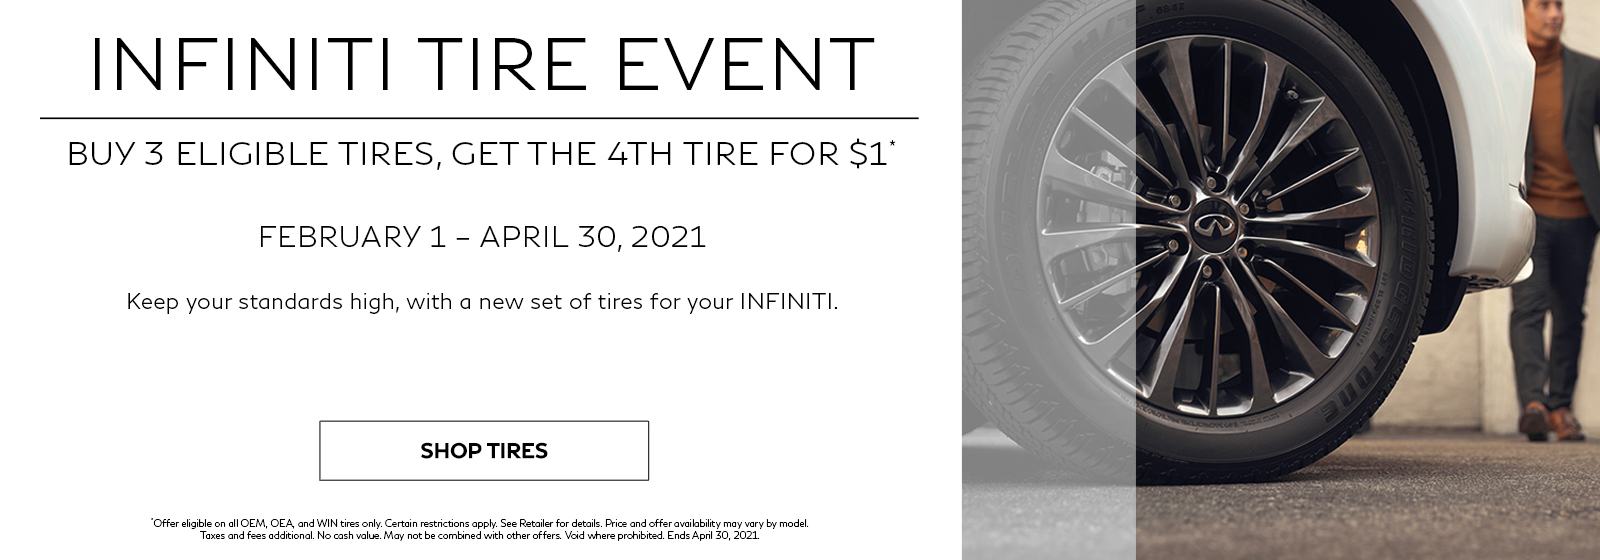 INFINITI Tire Event. Buy 3 eligible tires, get the 4th tire for $1. February 1 – April 30, 2021.